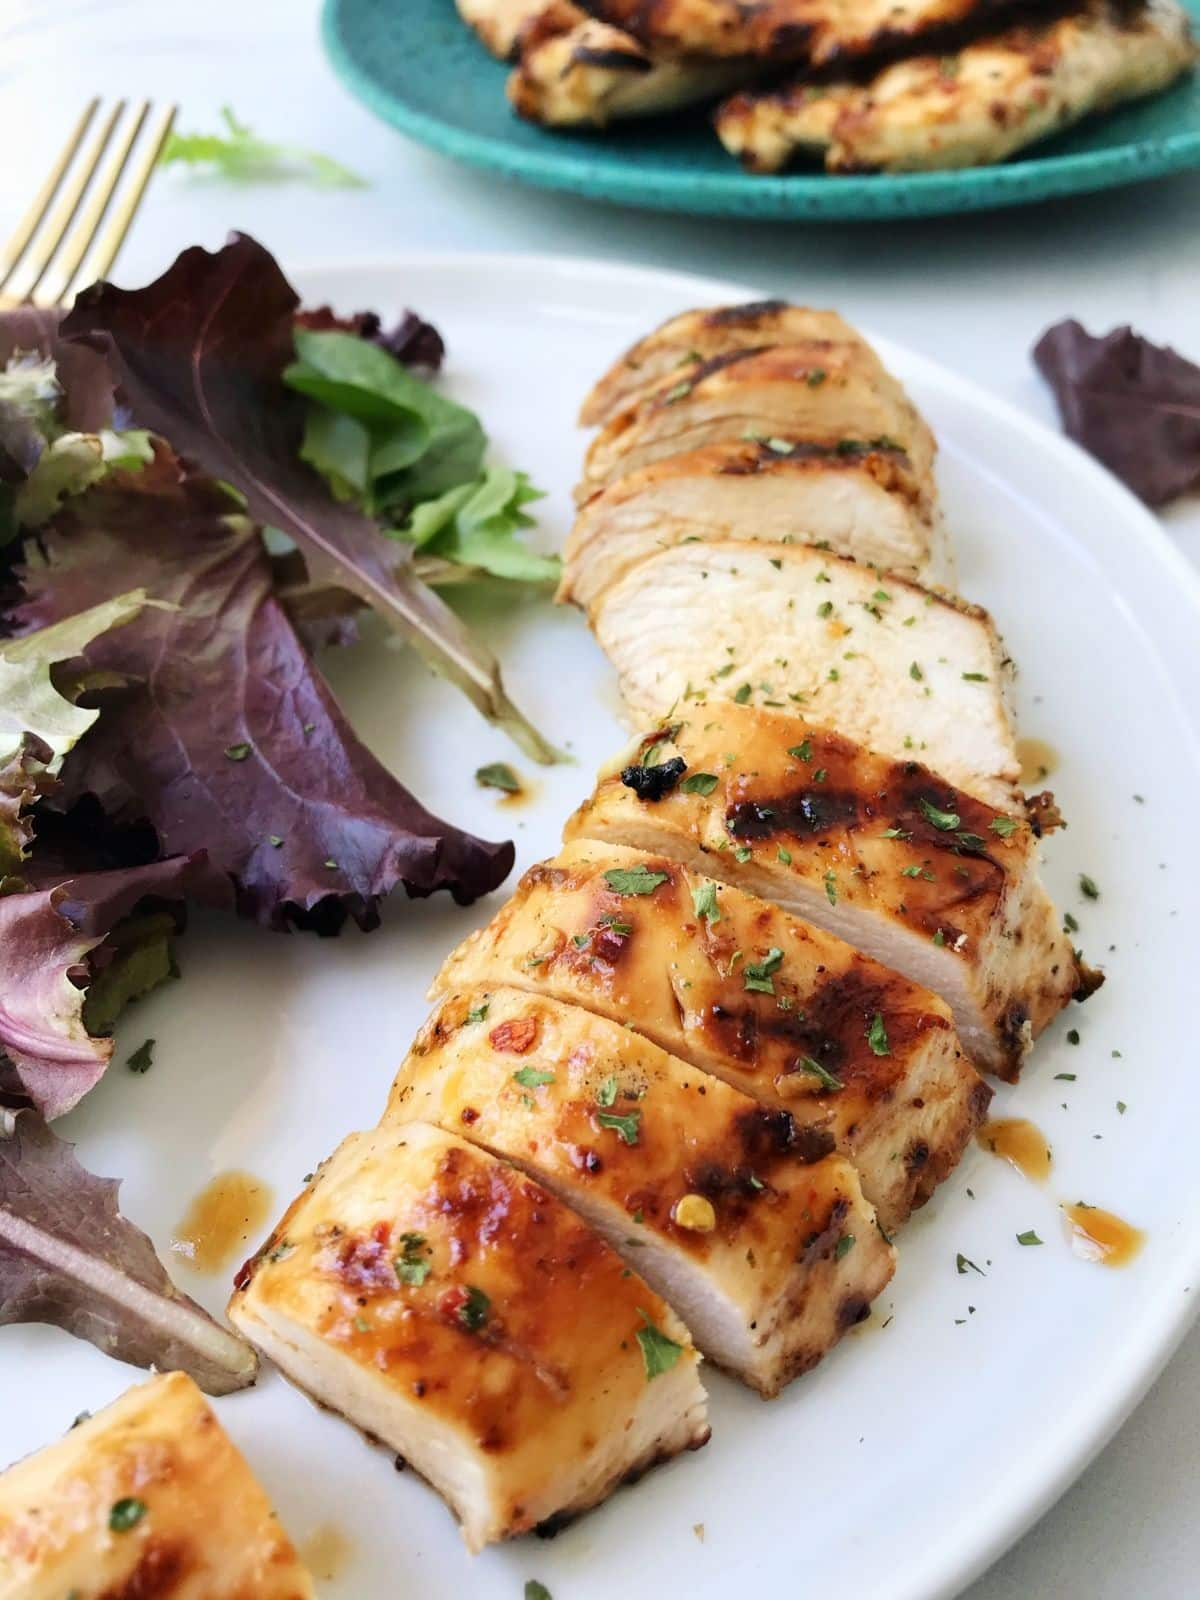 sliced chicken on a plate with salad greens